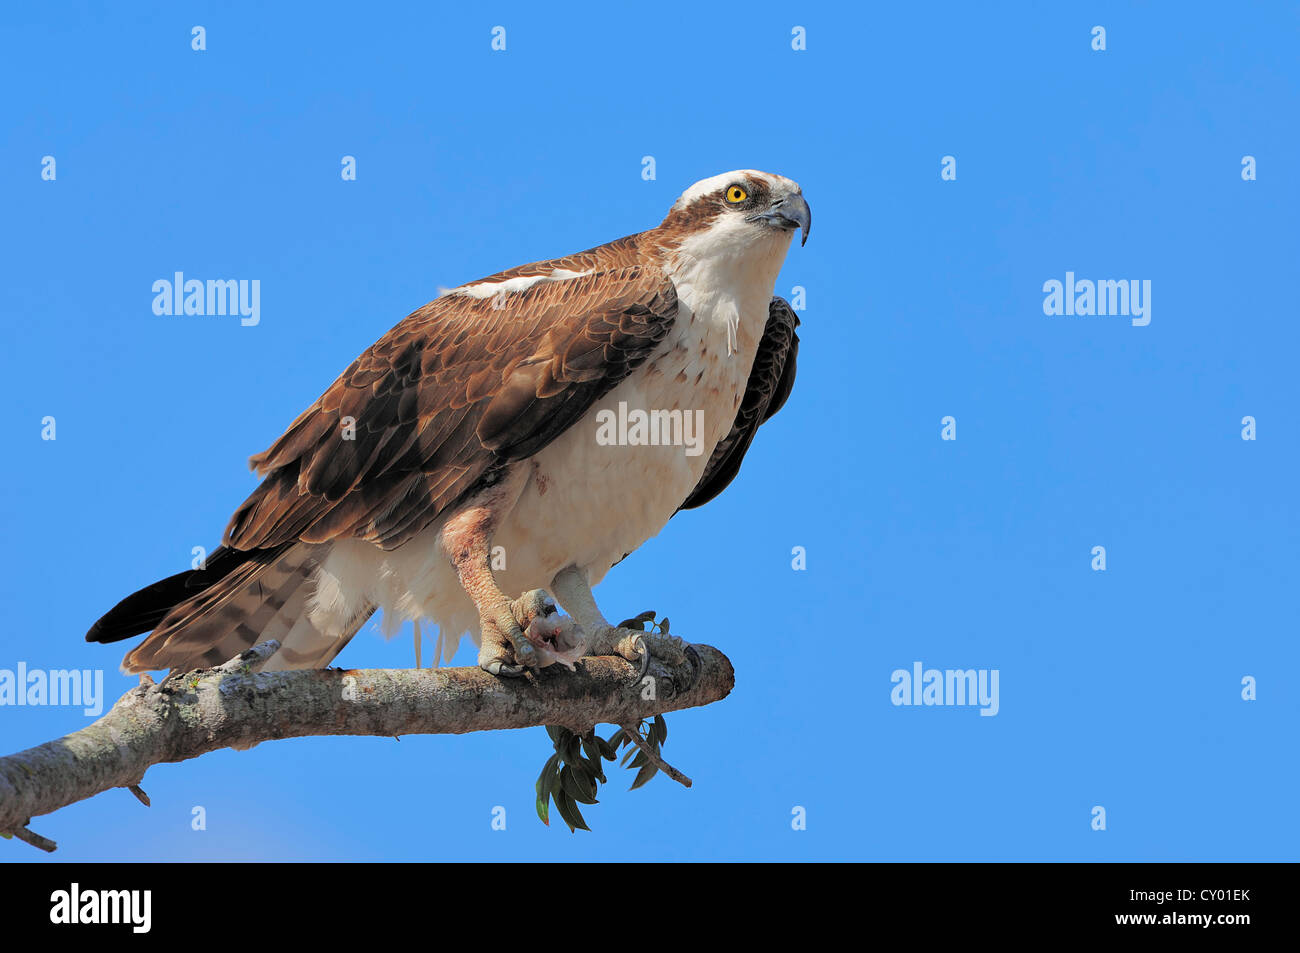 Osprey (Pandion haliaetus), with fish in its talons on perch, Everglades National Park, Florida, USA - Stock Image